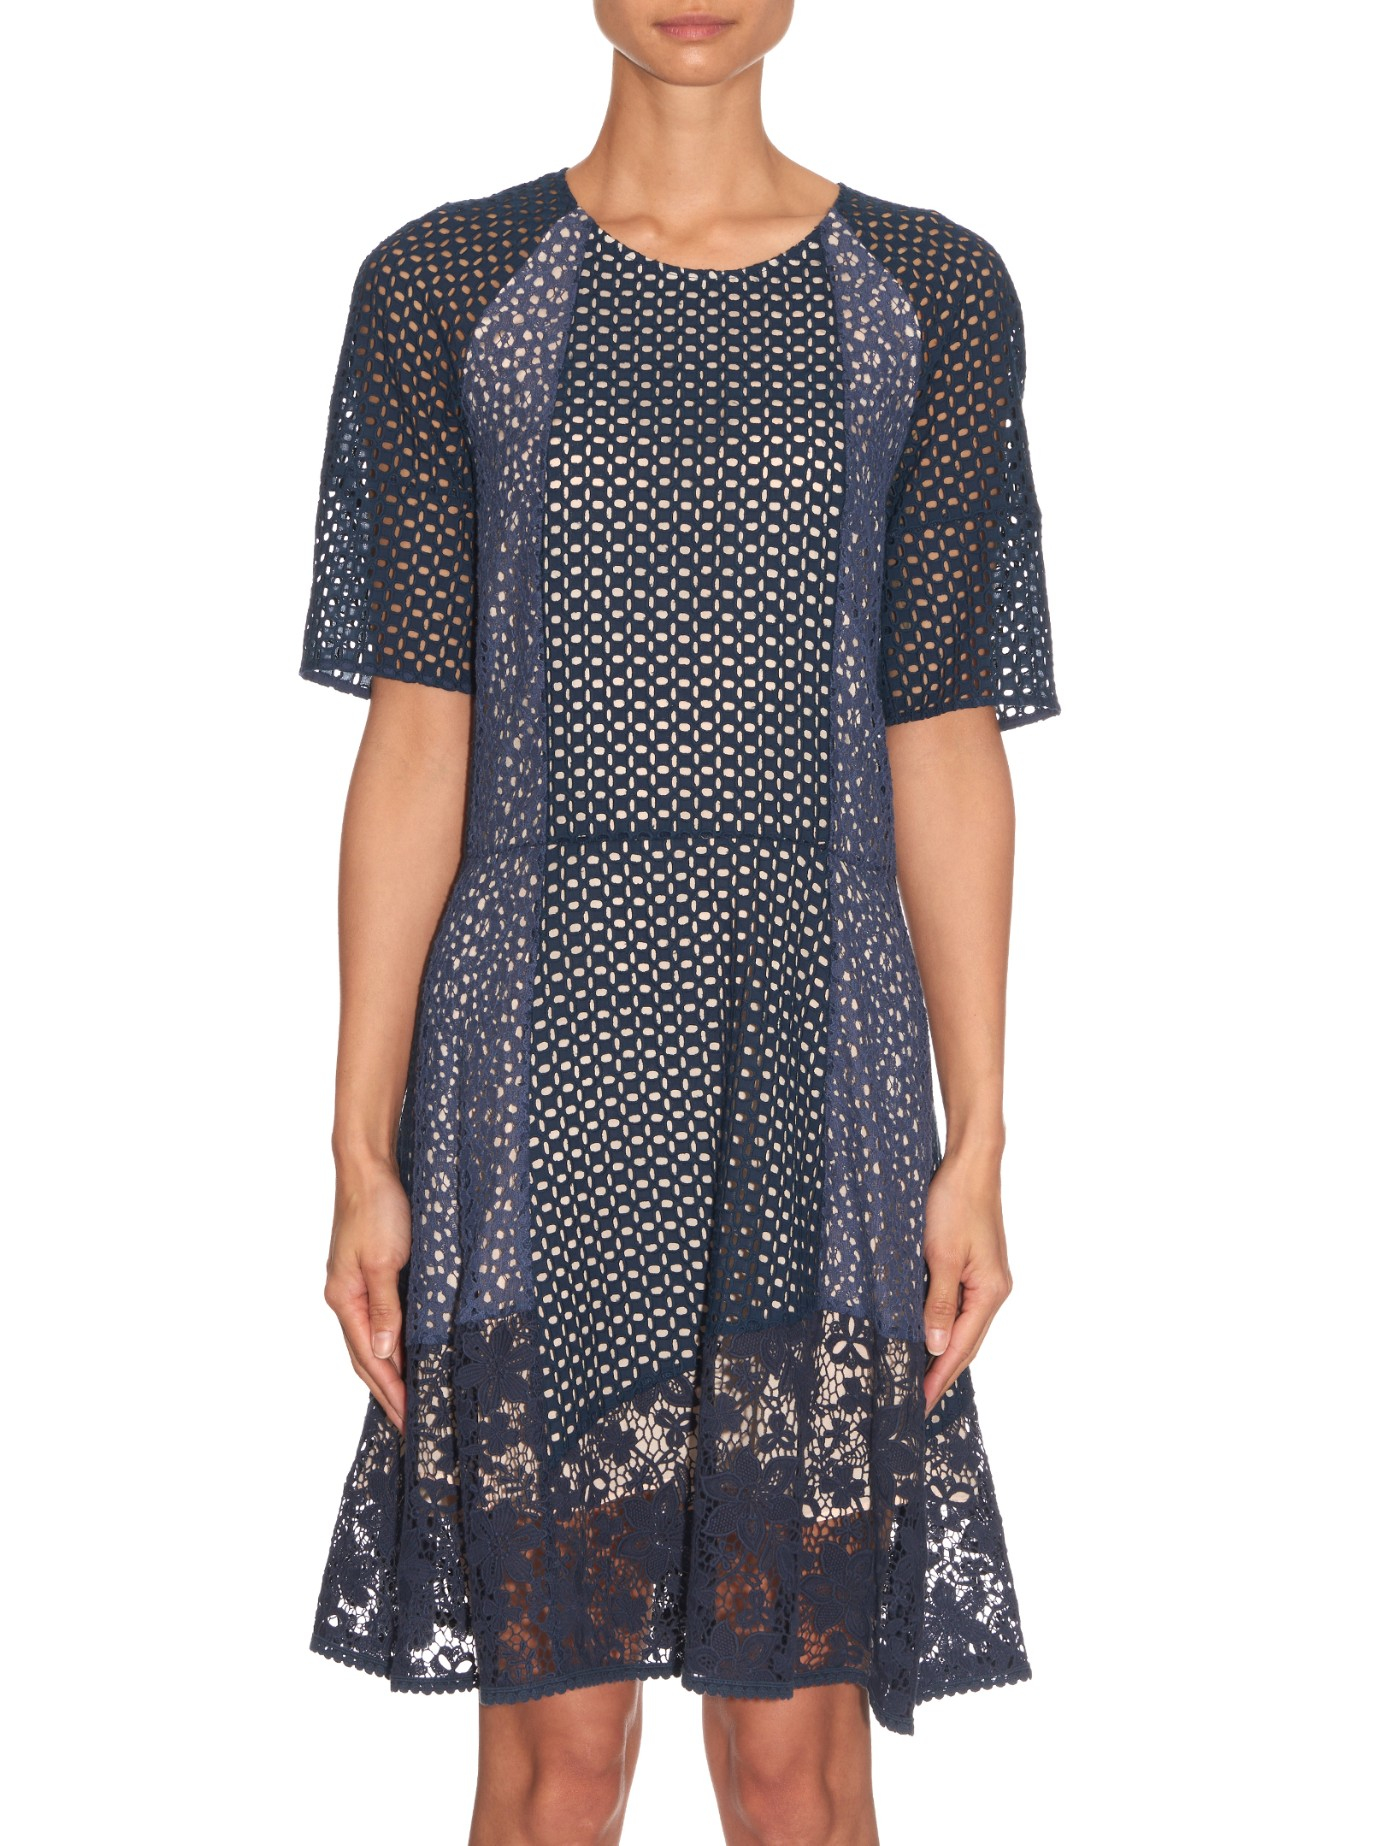 519a1d3f29327 See By Chloé Panelled Broderie-anglaise Cotton Dress in Blue - Lyst